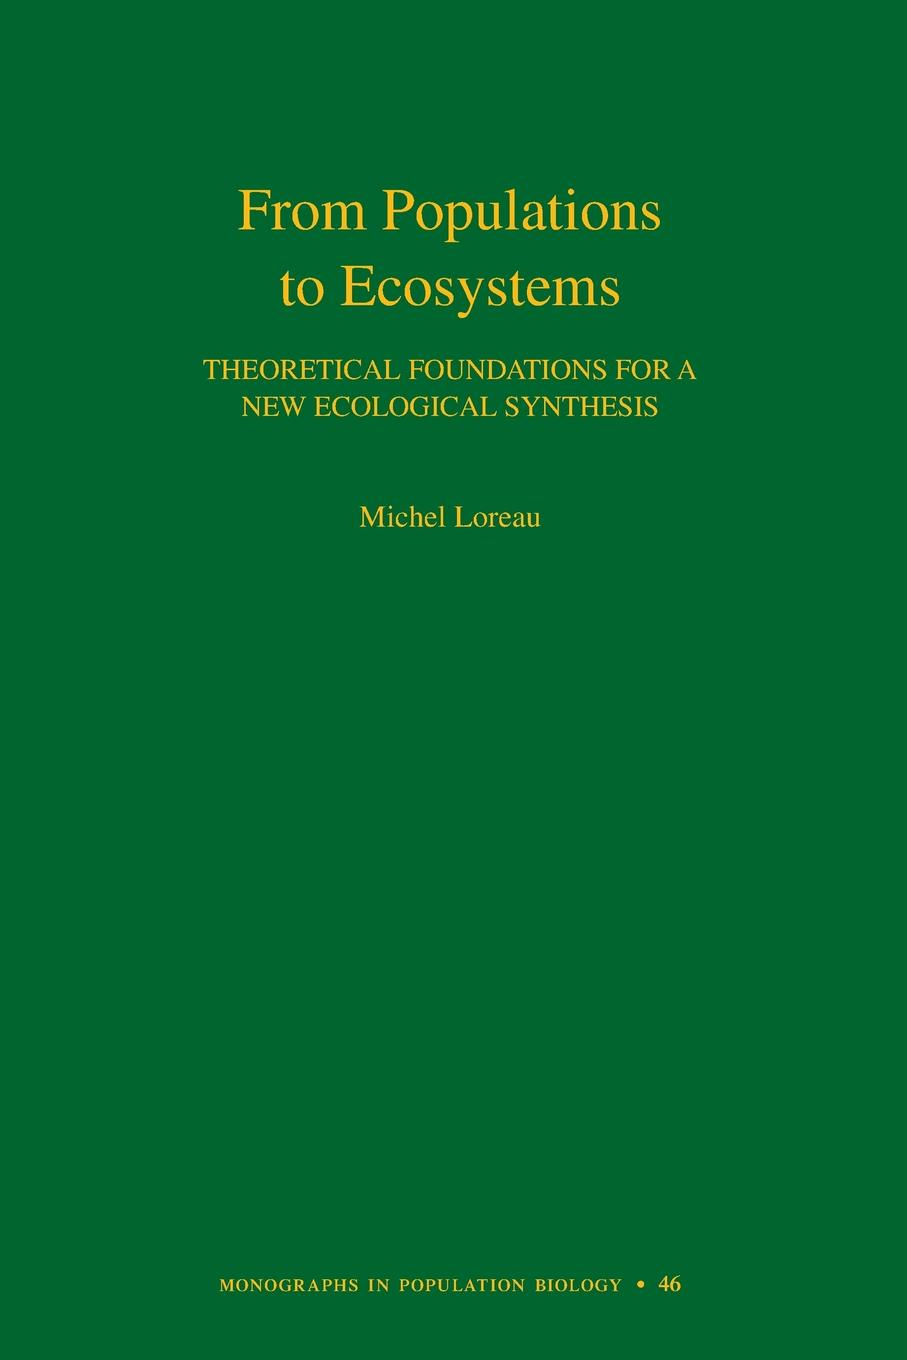 лучшая цена Michel Loreau From Populations to Ecosystems. Theoretical Foundations for a New Ecological Synthesis (MPB-46)